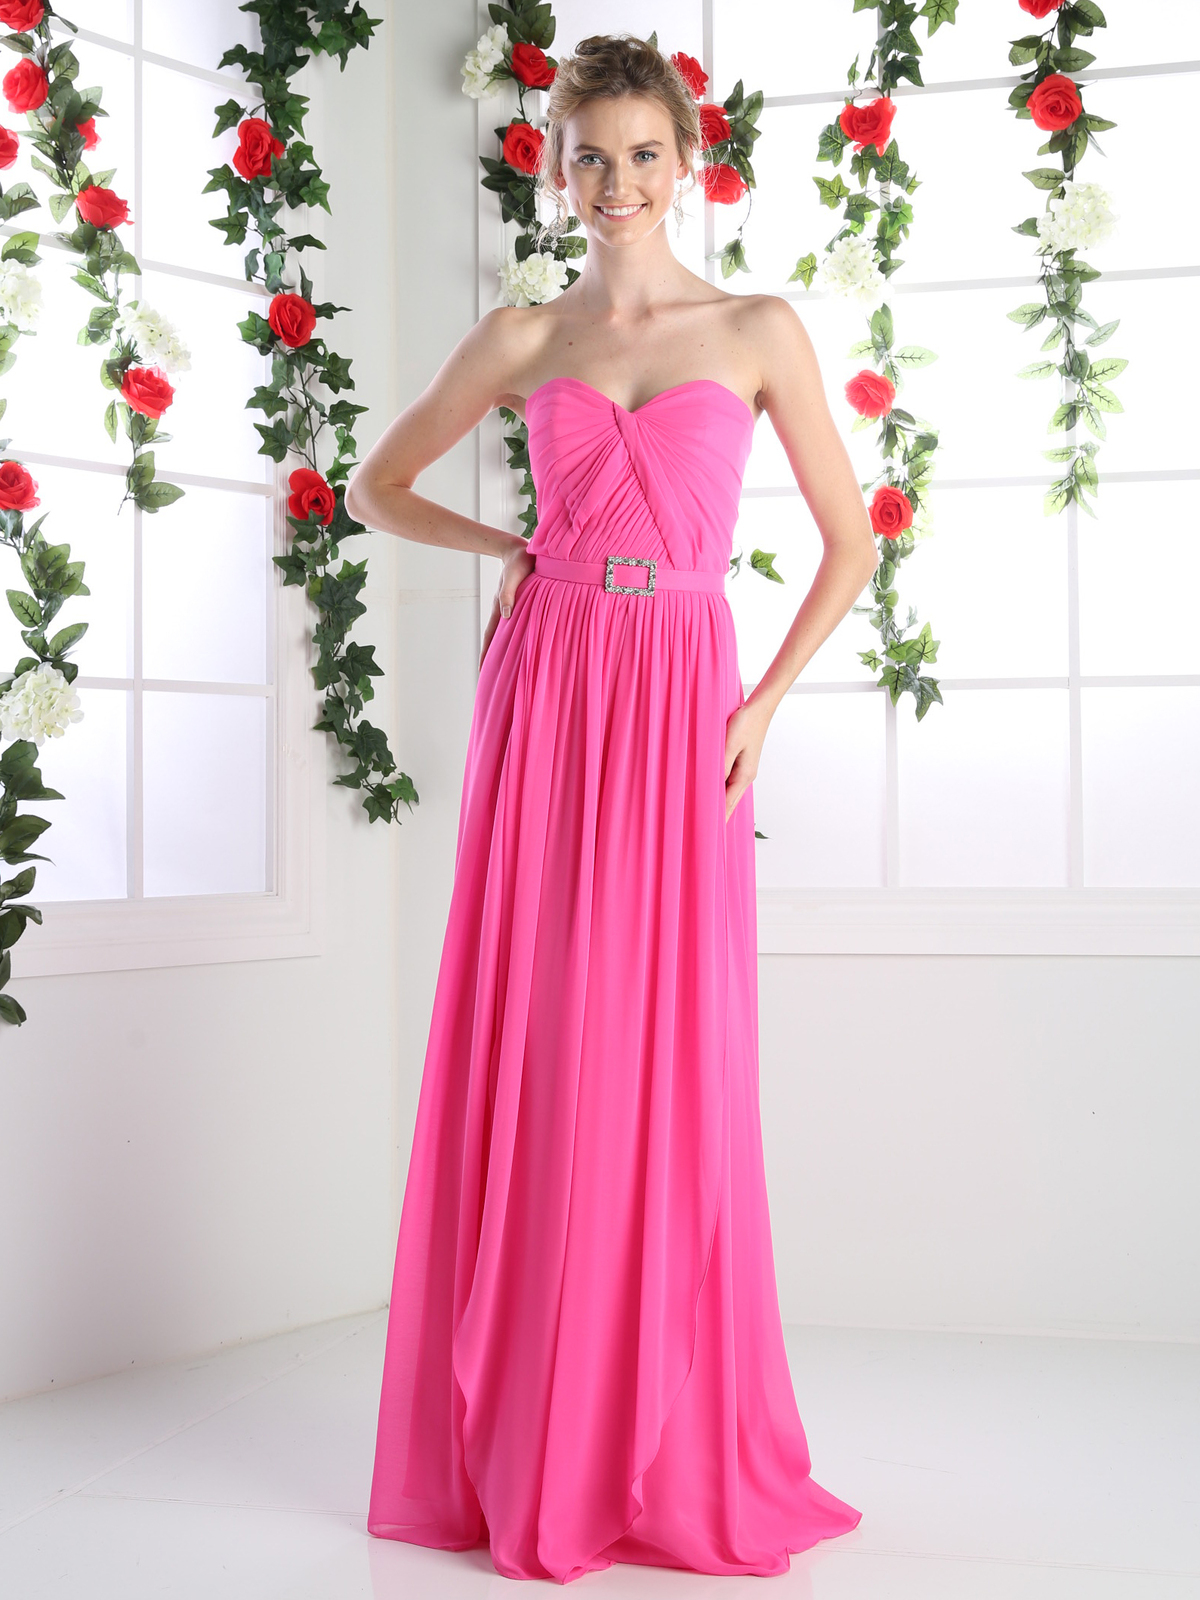 Sweetheart twisted front bridesmaid dress sung boutique la cd c7460 sweetheart twisted front bridesmaid dress hot pink front view medium ombrellifo Images